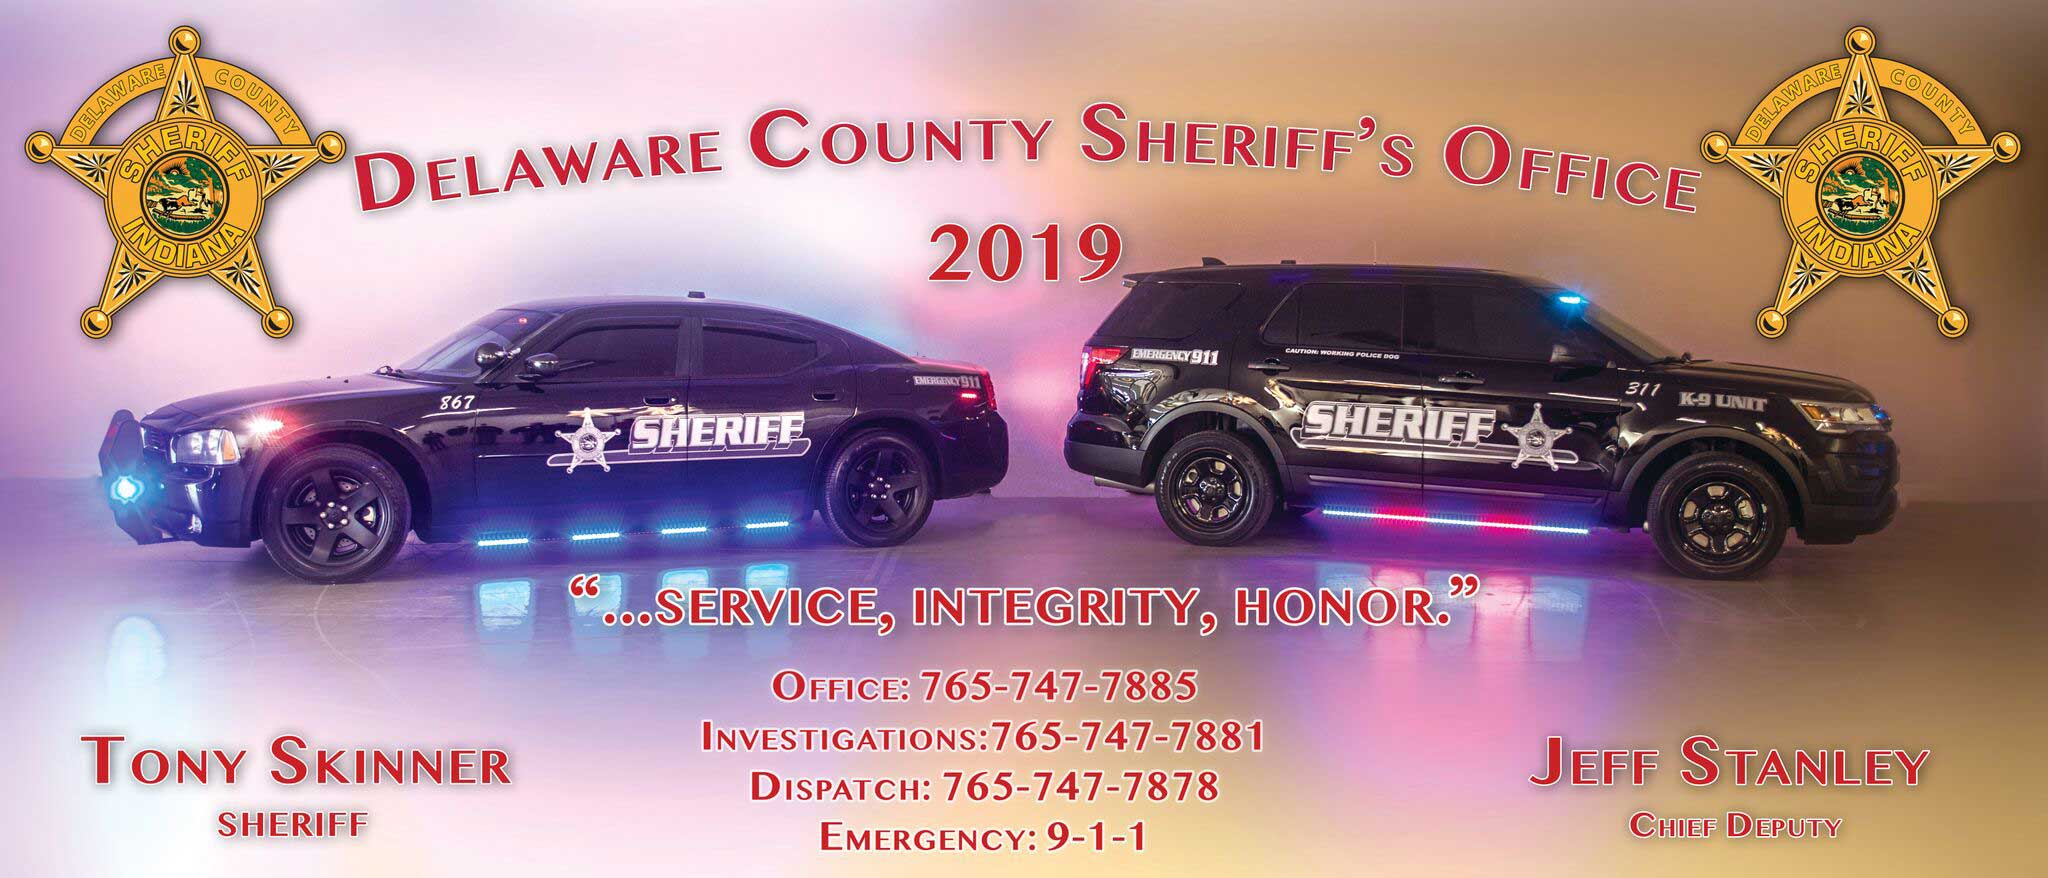 Delaware County Sheriff - Serving Delaware County, Indiana